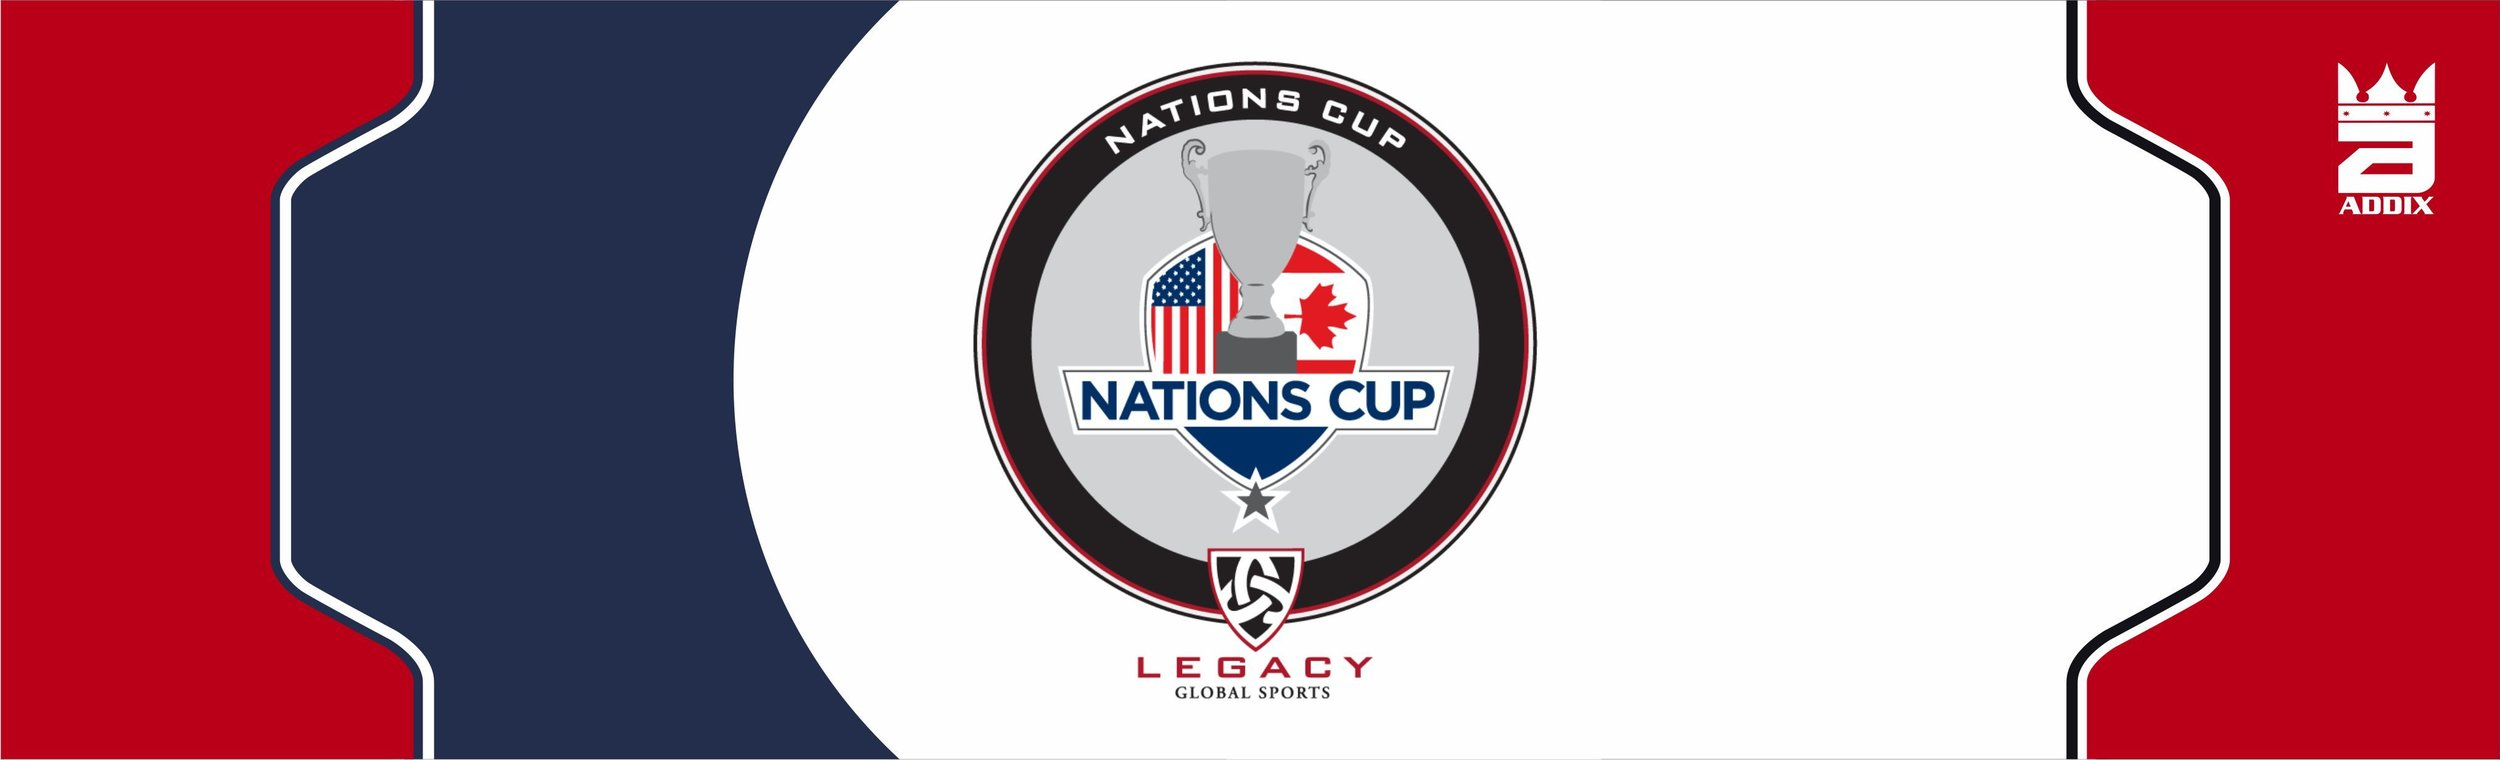 Nations Cup 2019 - USA